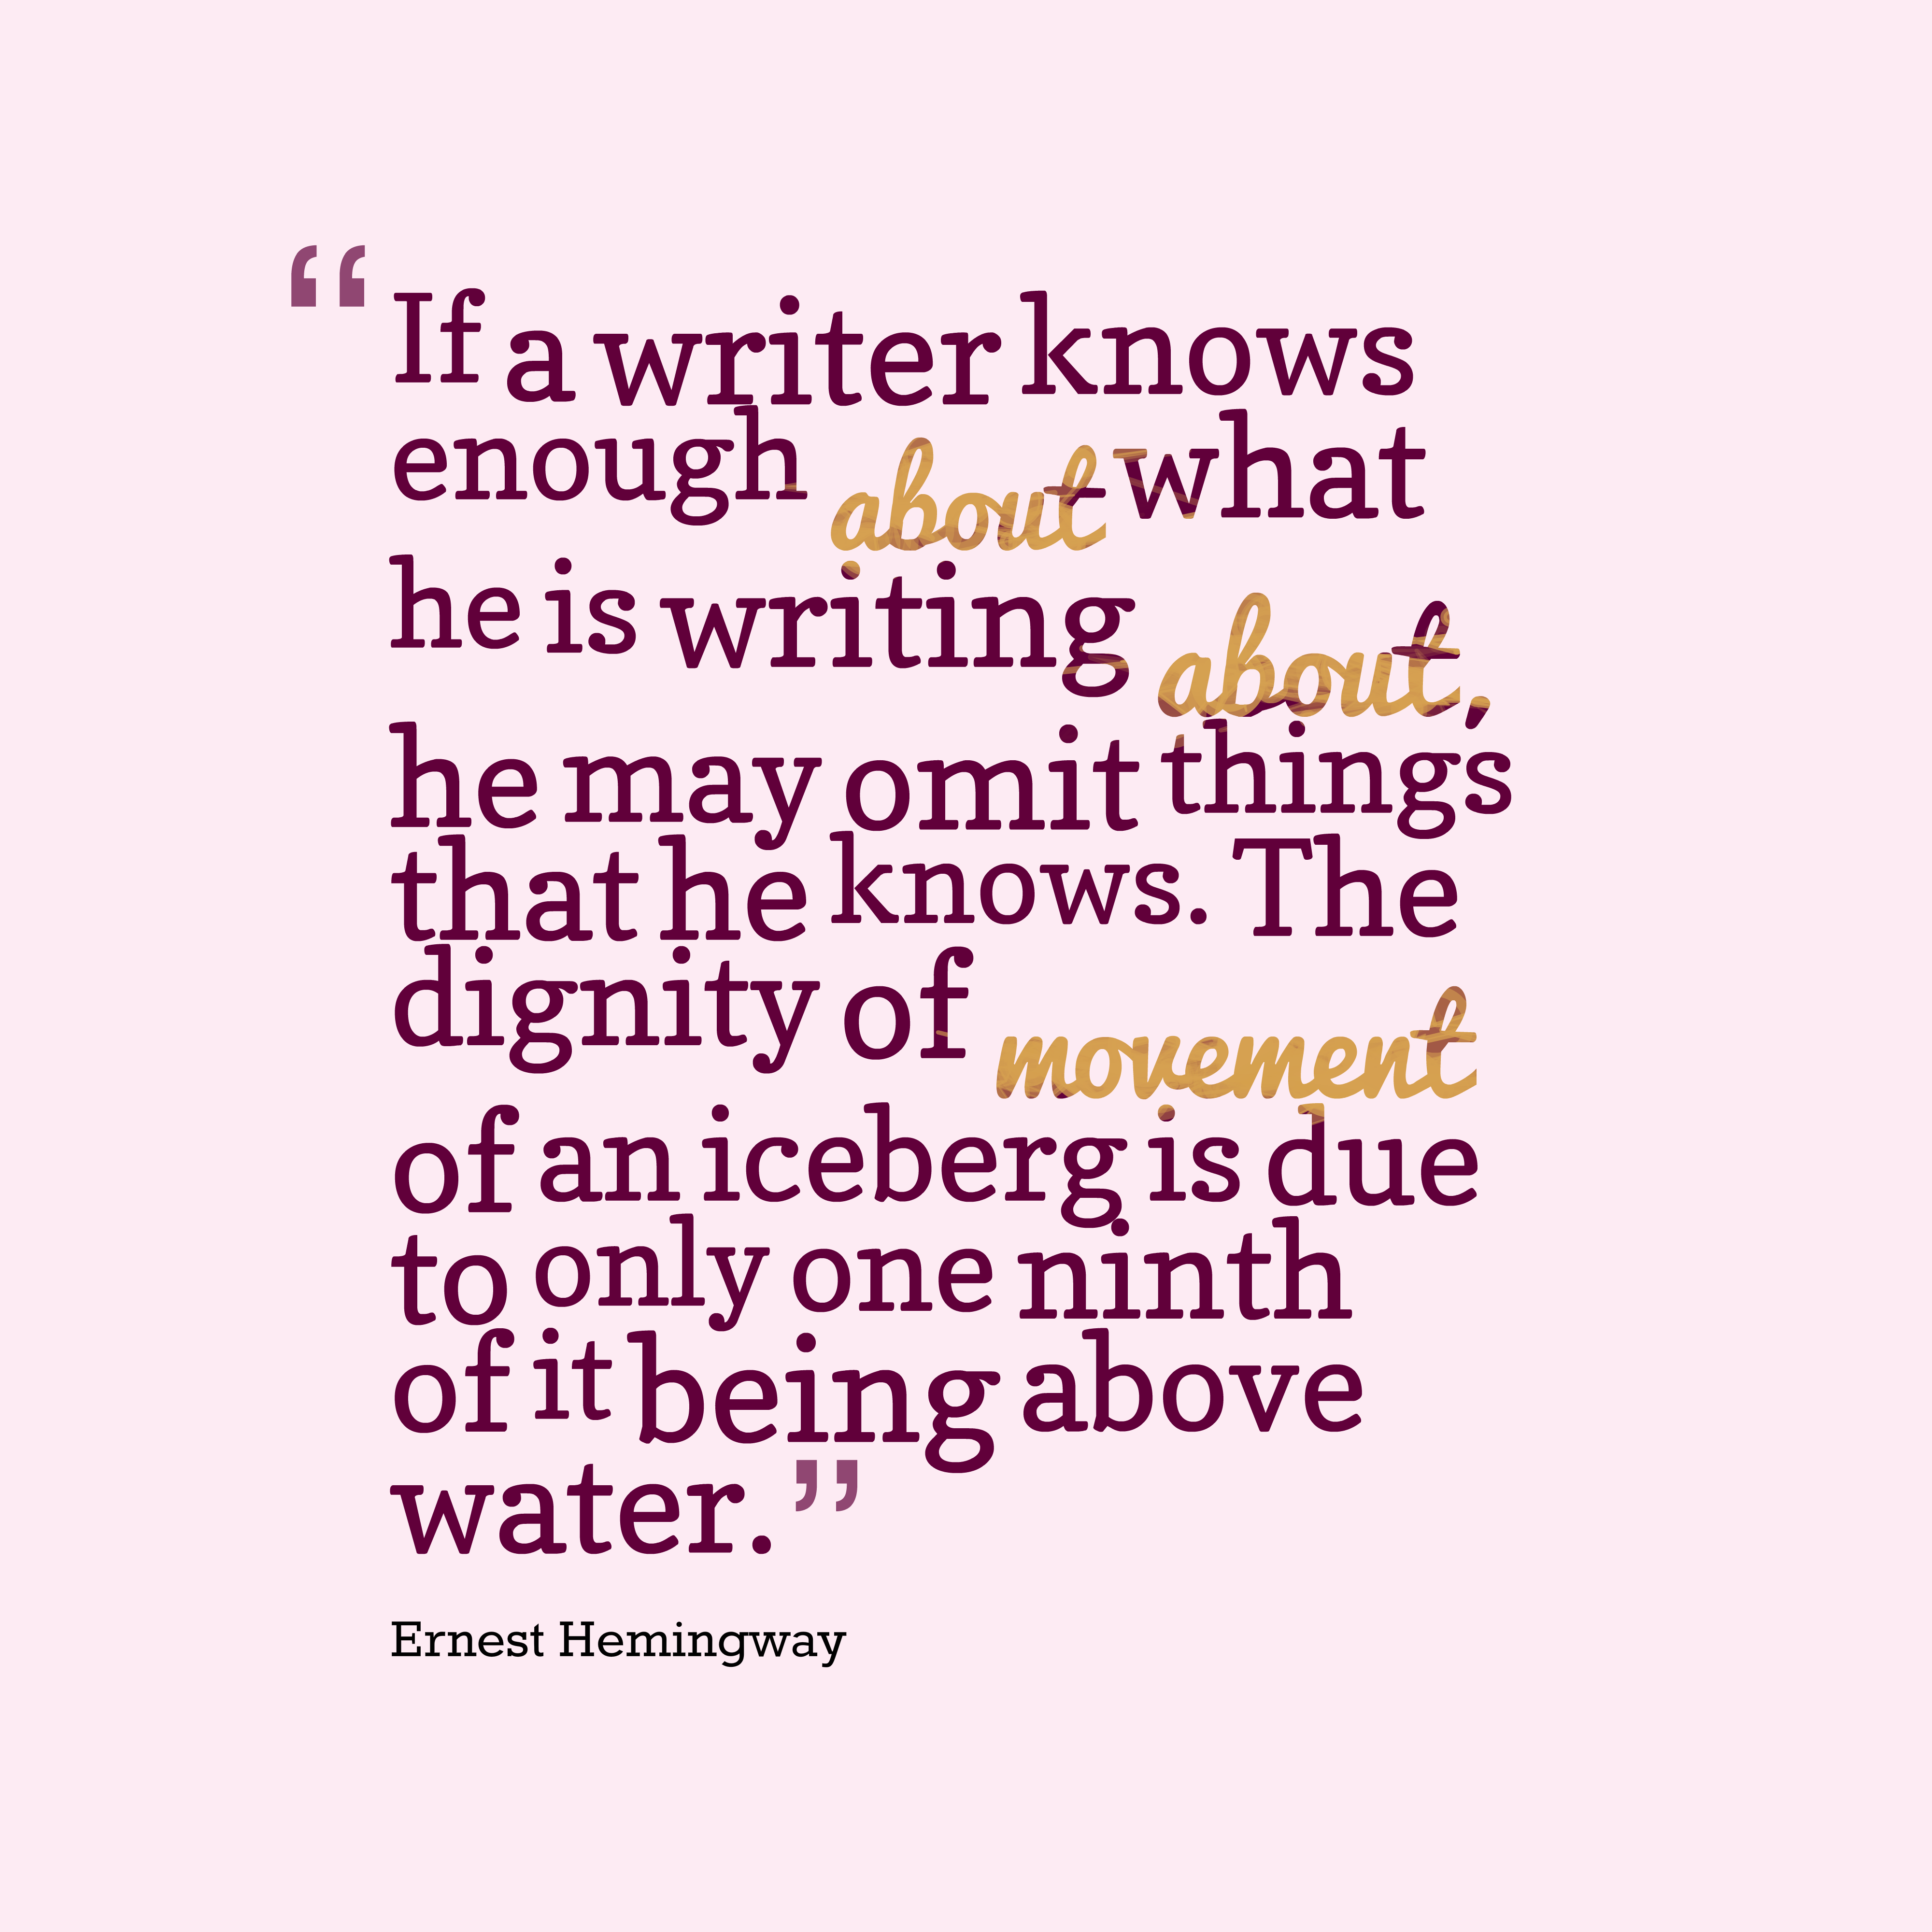 hi-res image of If a writer knows enough about what he is writing about, he may omit things that he knows. The dignity of movement of an iceberg is due to only one ninth of it being above water.